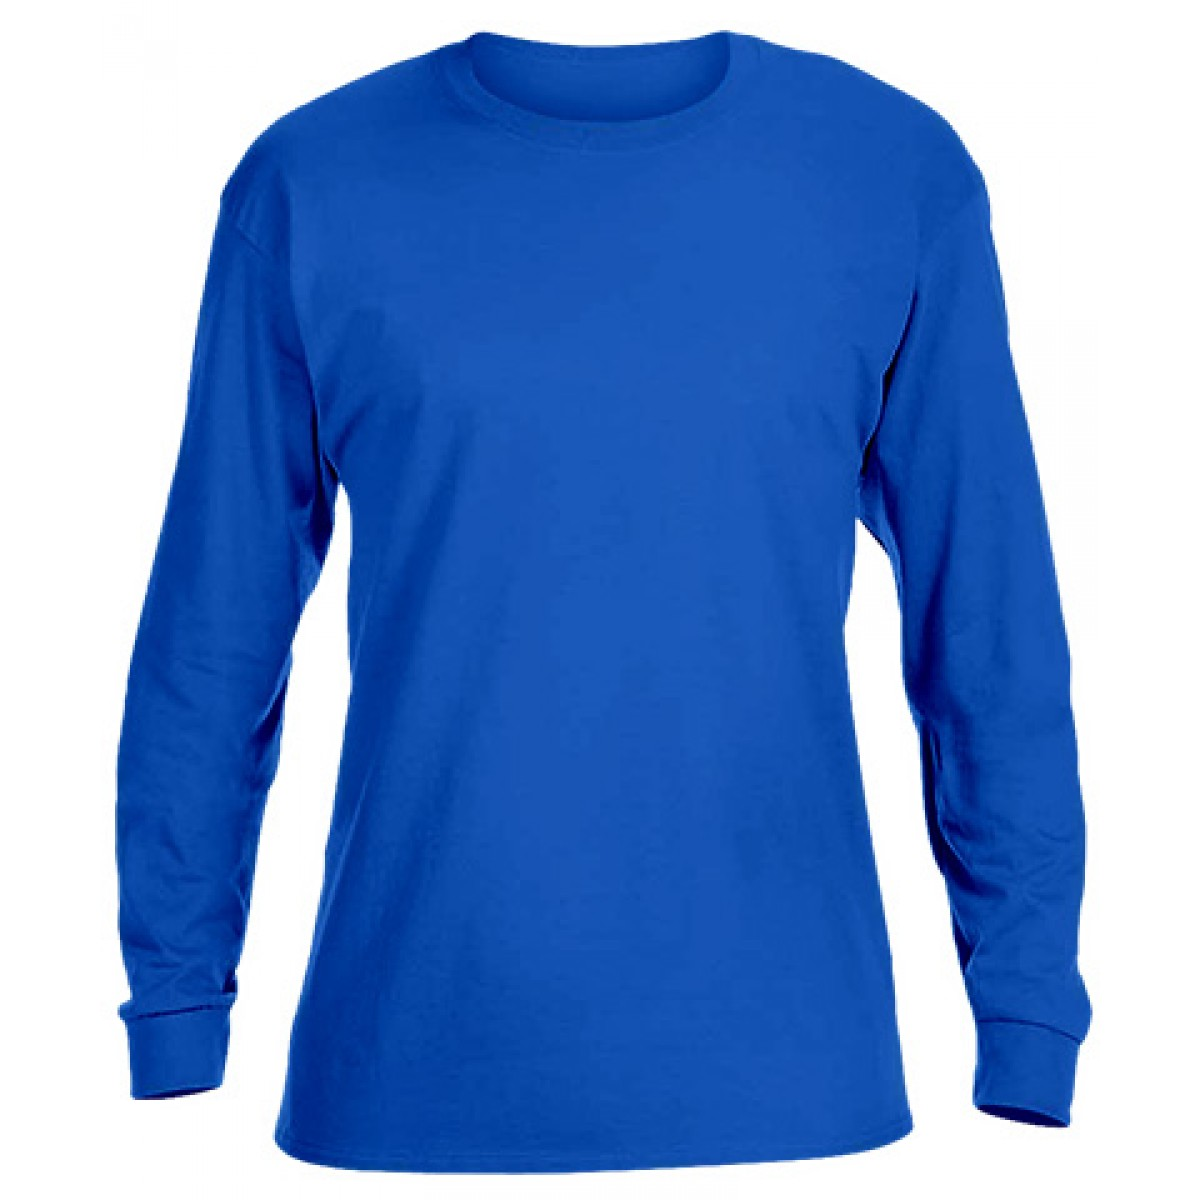 Basic Long Sleeve Crew Neck -Royal Blue-3XL